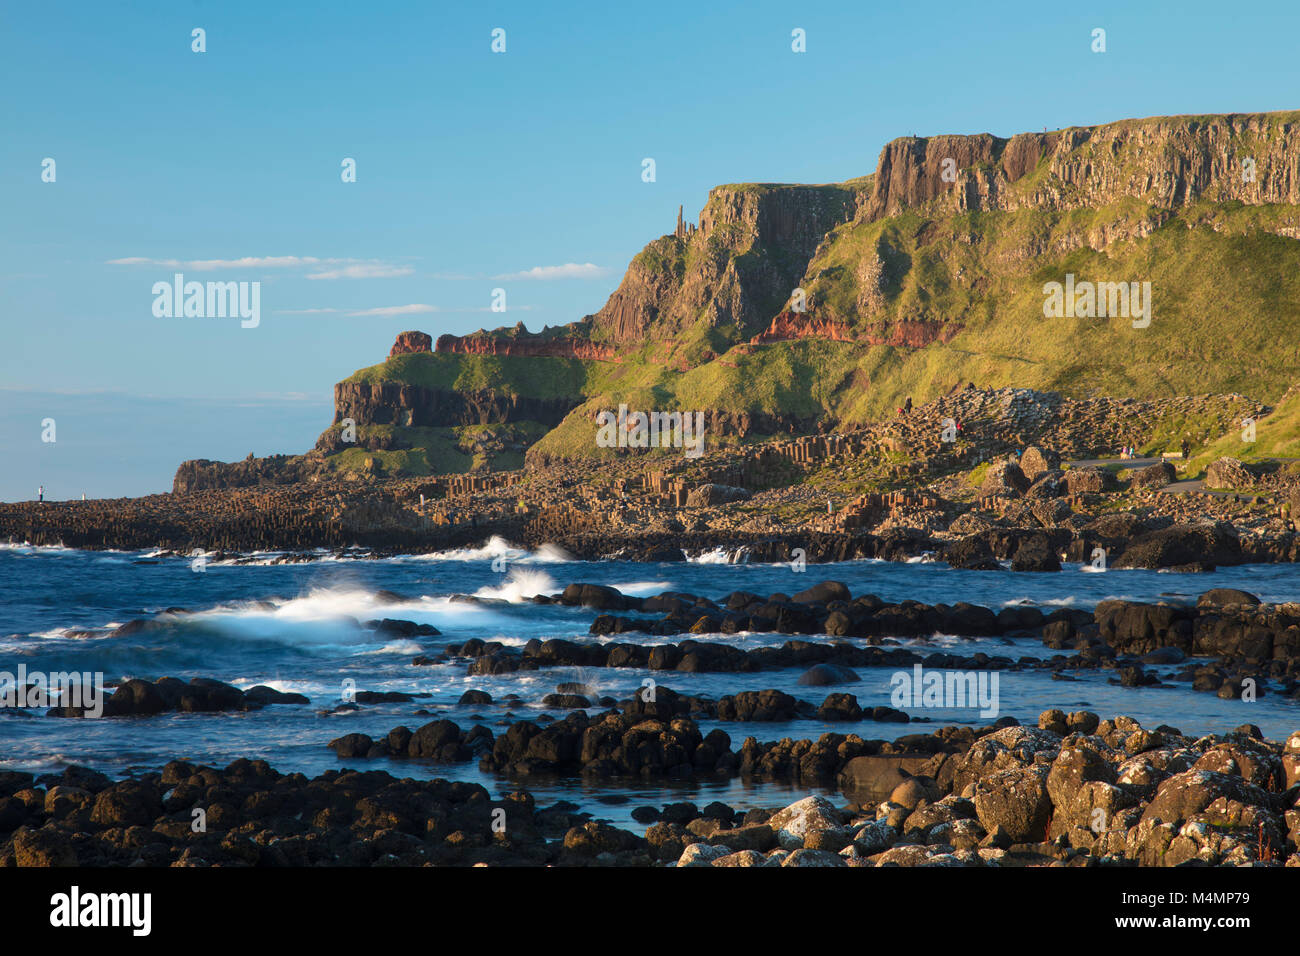 Lacada Point rises behind the Giant's Causeway, Country Antrim, Northern Ireland. - Stock Image